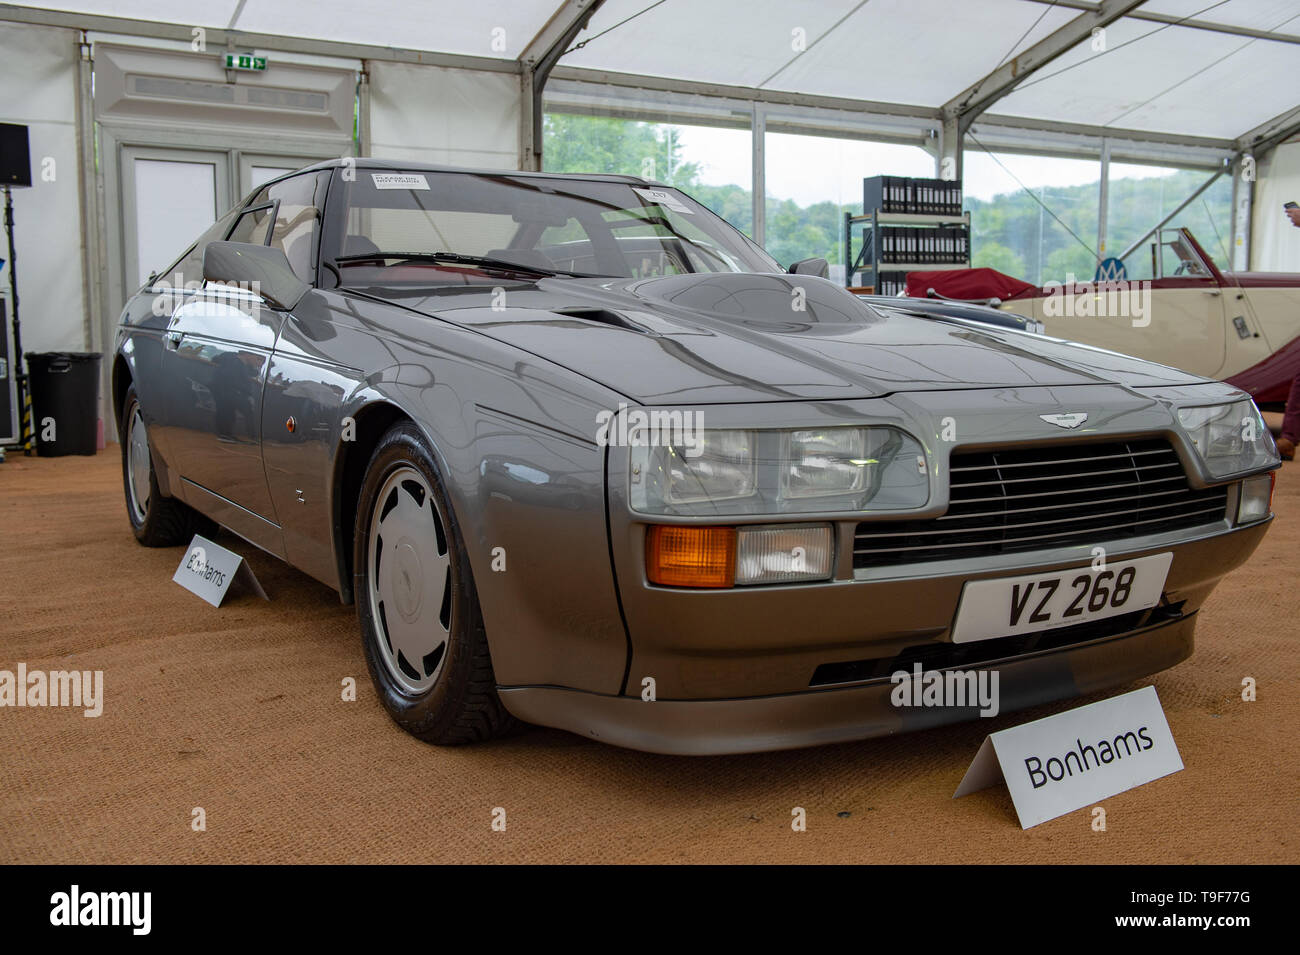 High Wycombe United Kingdom 18 May 2019 Bonhams Put Aston Martin And Lagonda Cars And Related Automobilia Under The Hammer At The Wormsley Estate In Buckinghamshire Pictured 1986 Aston Martin V8 Vantage